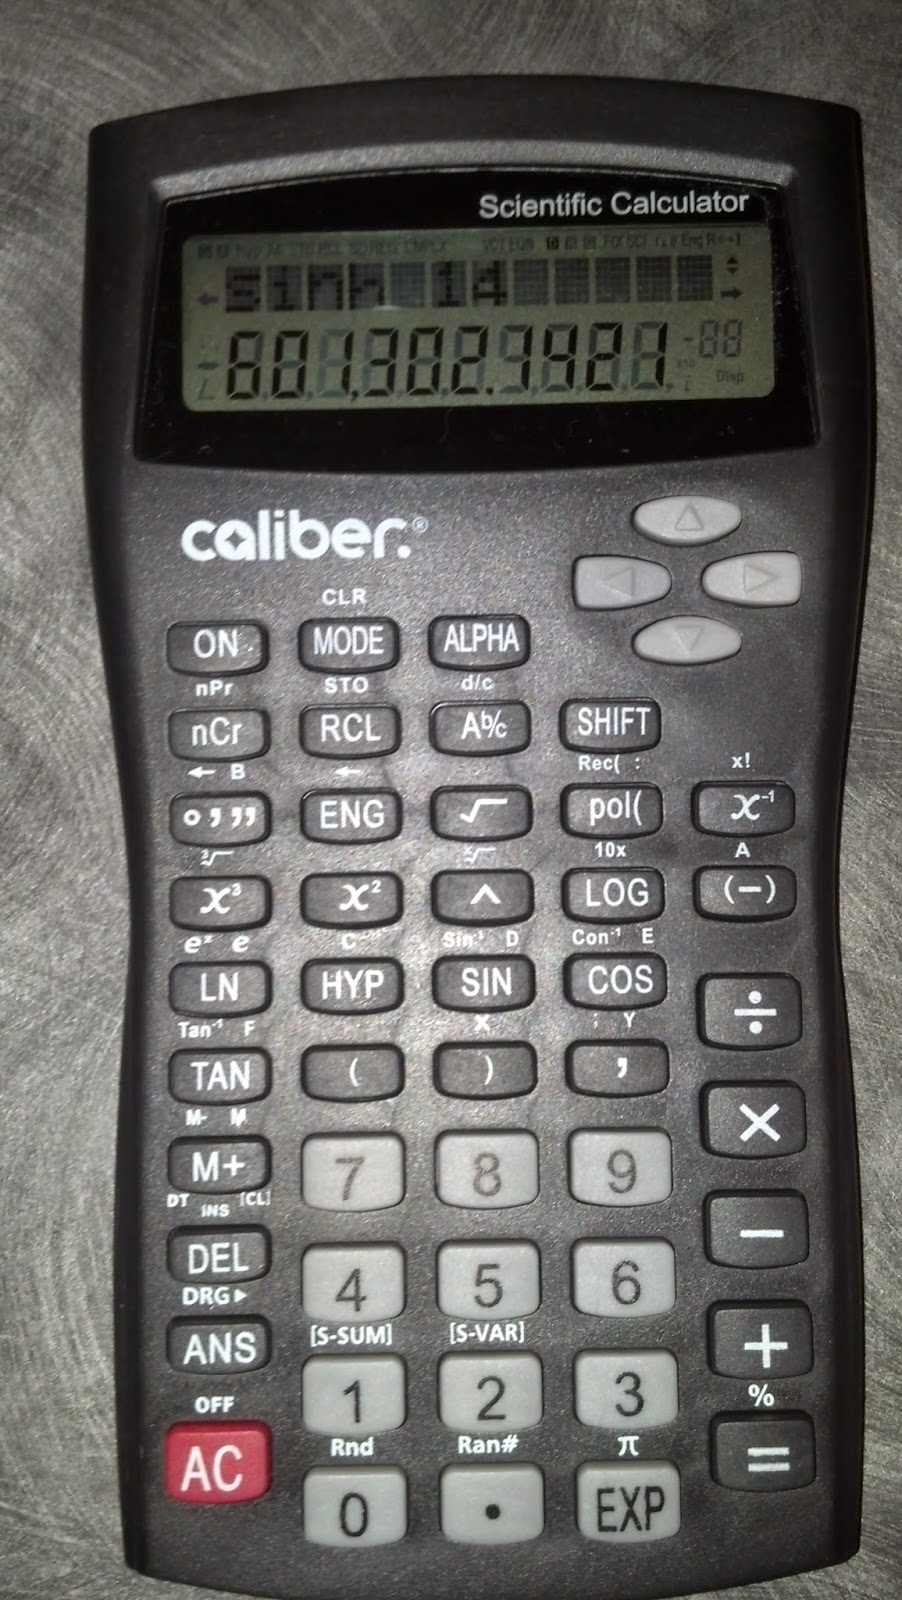 eddie s math and calculator blog caliber scientific calculator by